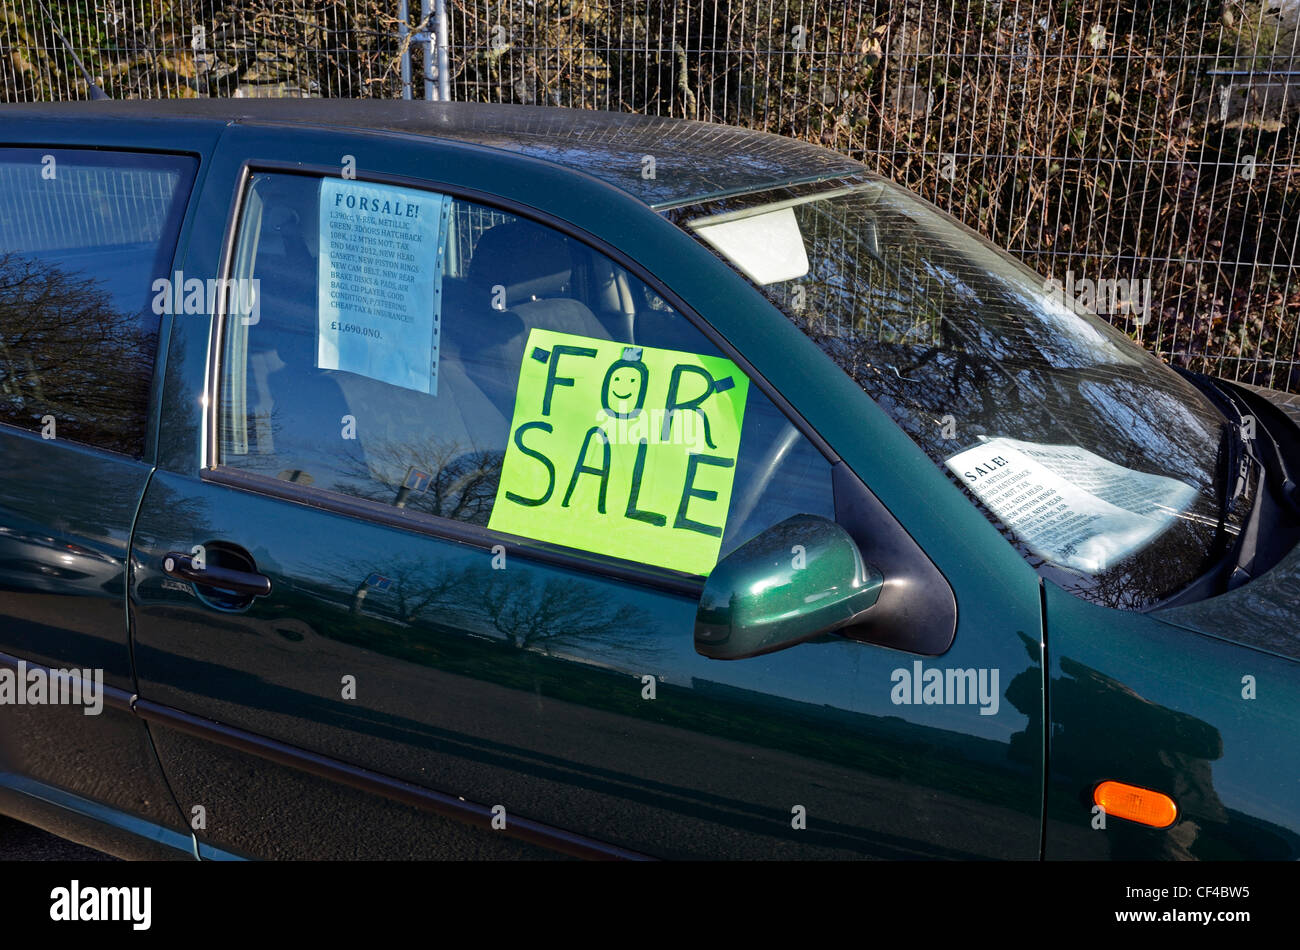 A car with a for sale sign in the window Photo Royalty Free – Free for Sale Signs for Cars